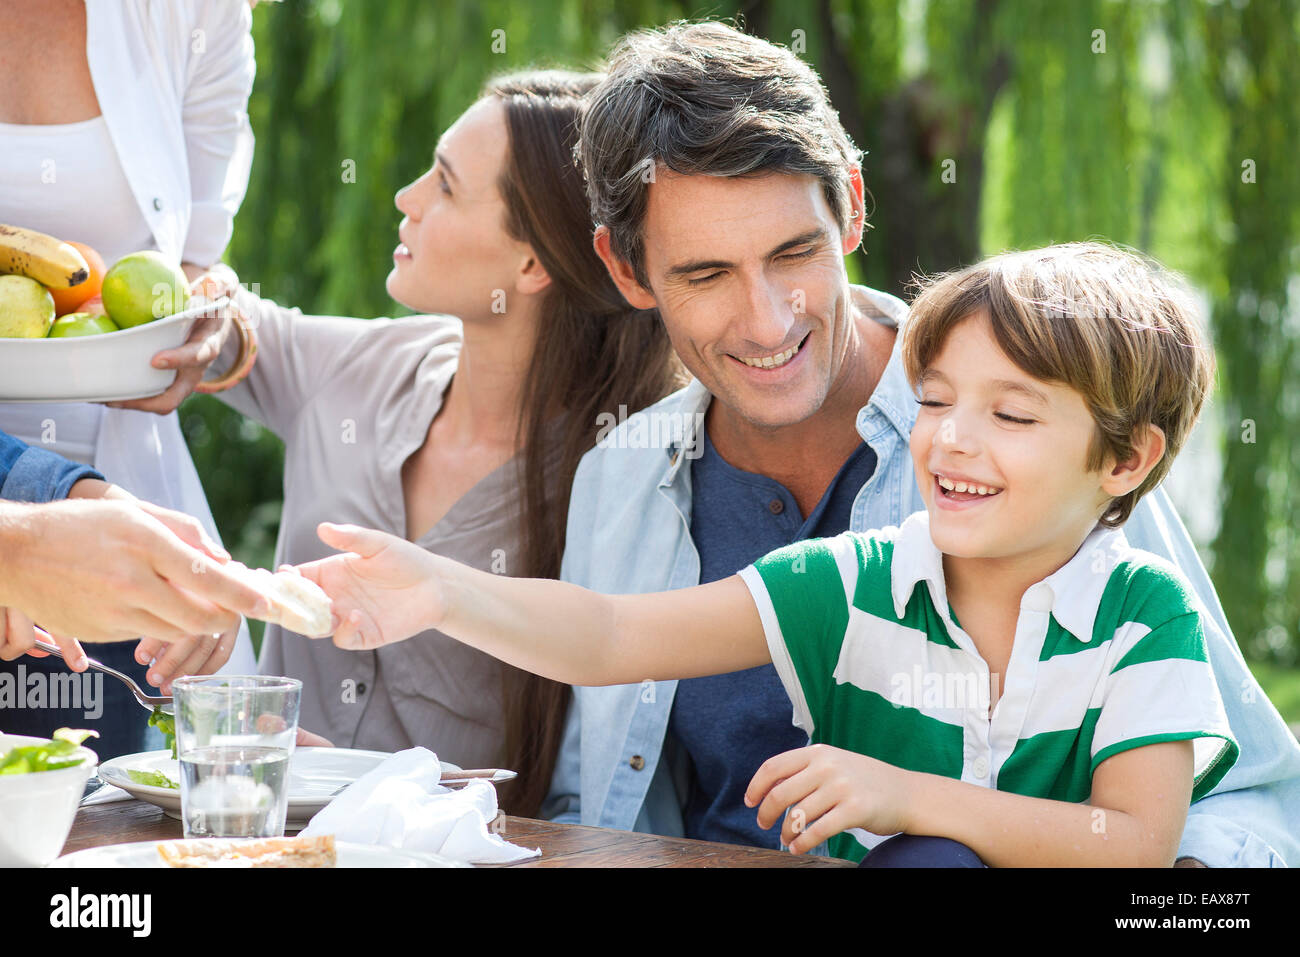 Family eating healthy meal together outdoors, father holding son on lap - Stock Image